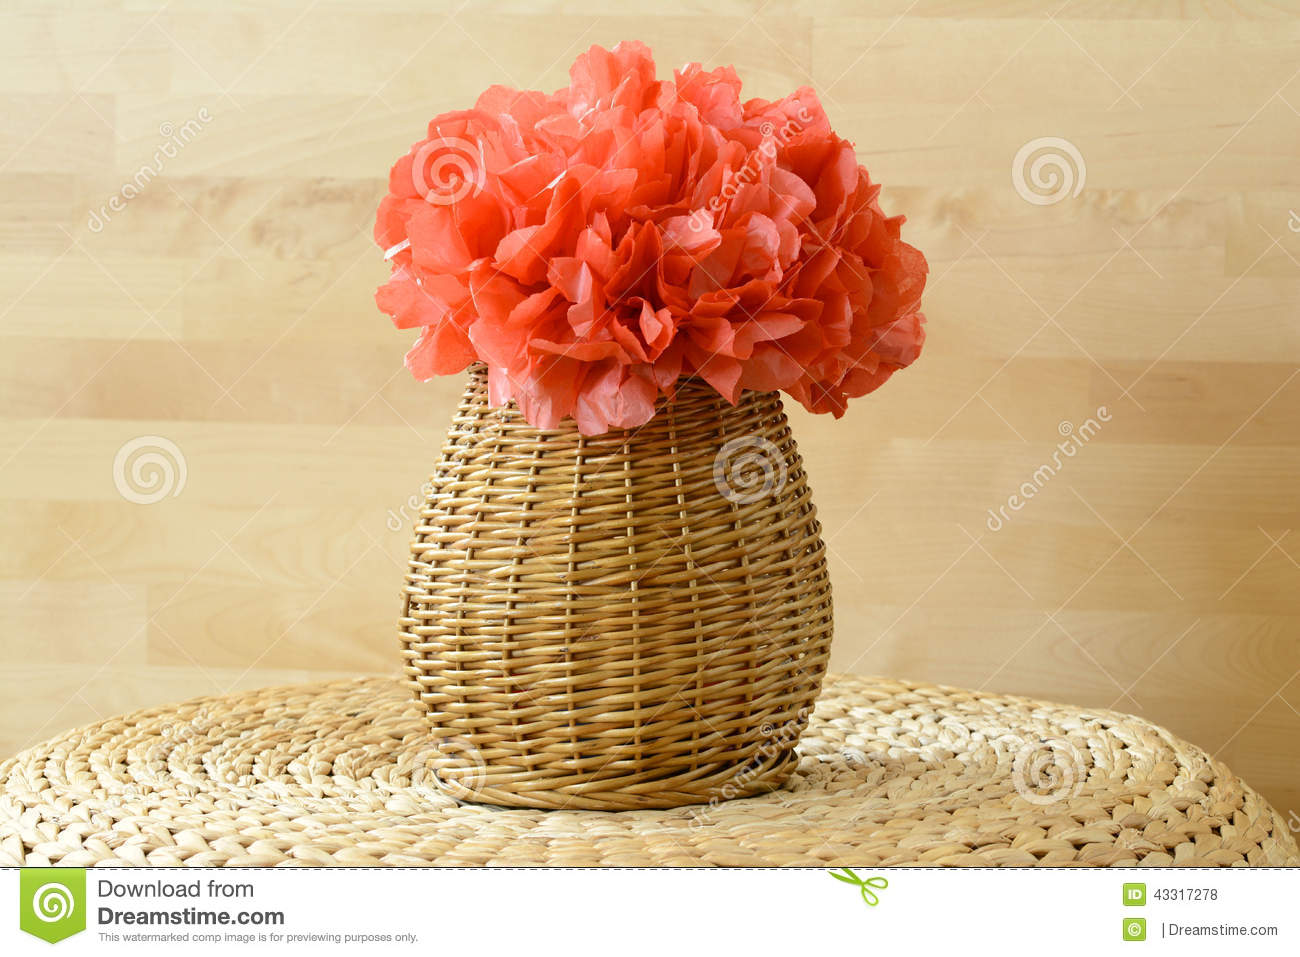 Horizontal Vase Basket With Red Tissue Paper Flowe Stock Photo